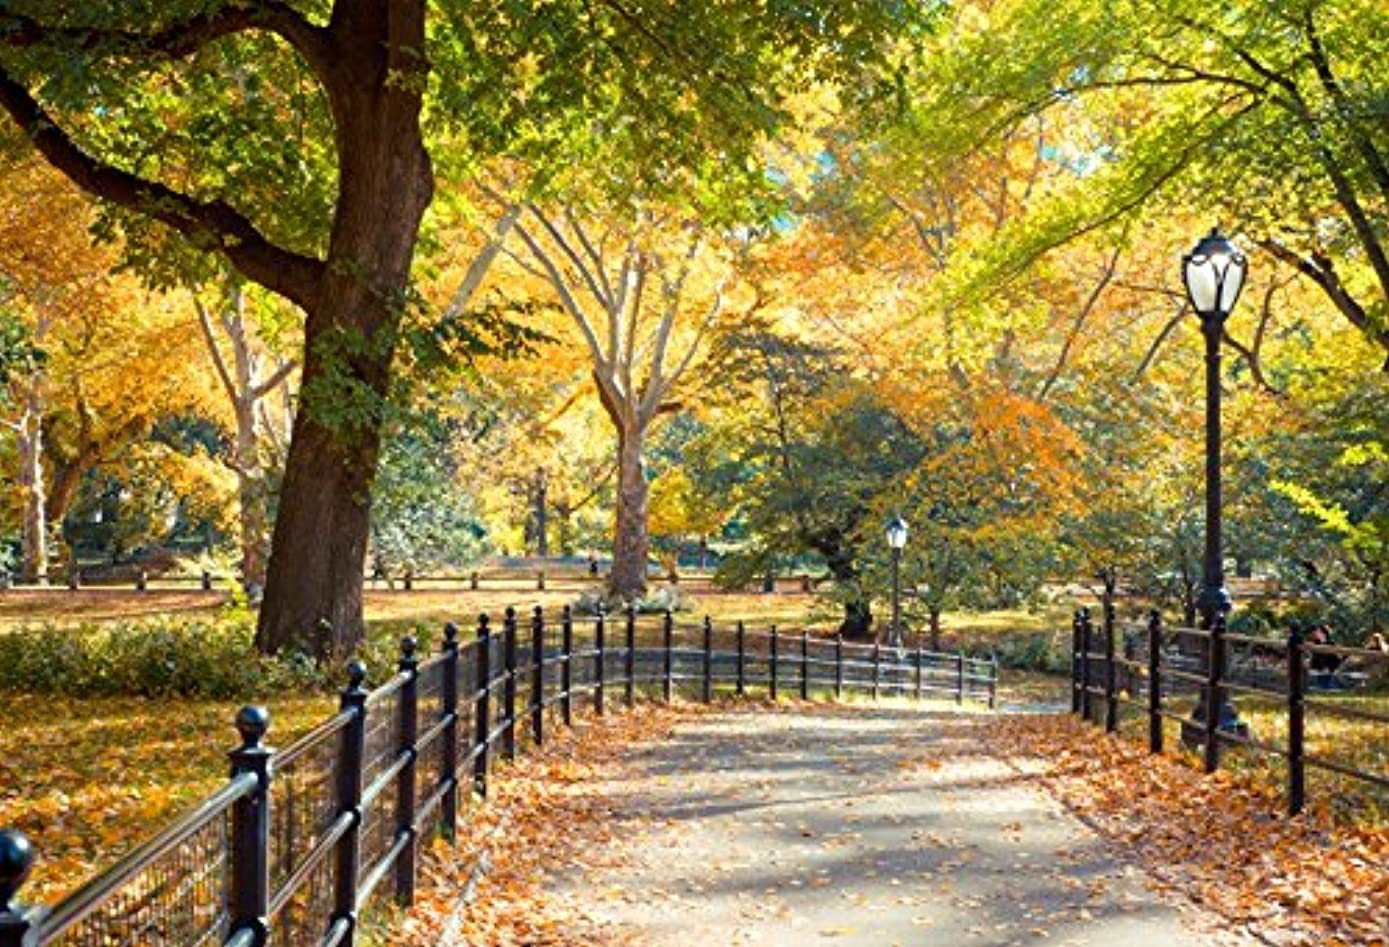 Laeacco New York City Central Park Photography Background 10x6.5ft Coloful Autumn Day Backdrops Landscape Road Lamp Fallen Leaves Trees Natural Backdrops Studio Photographic Props